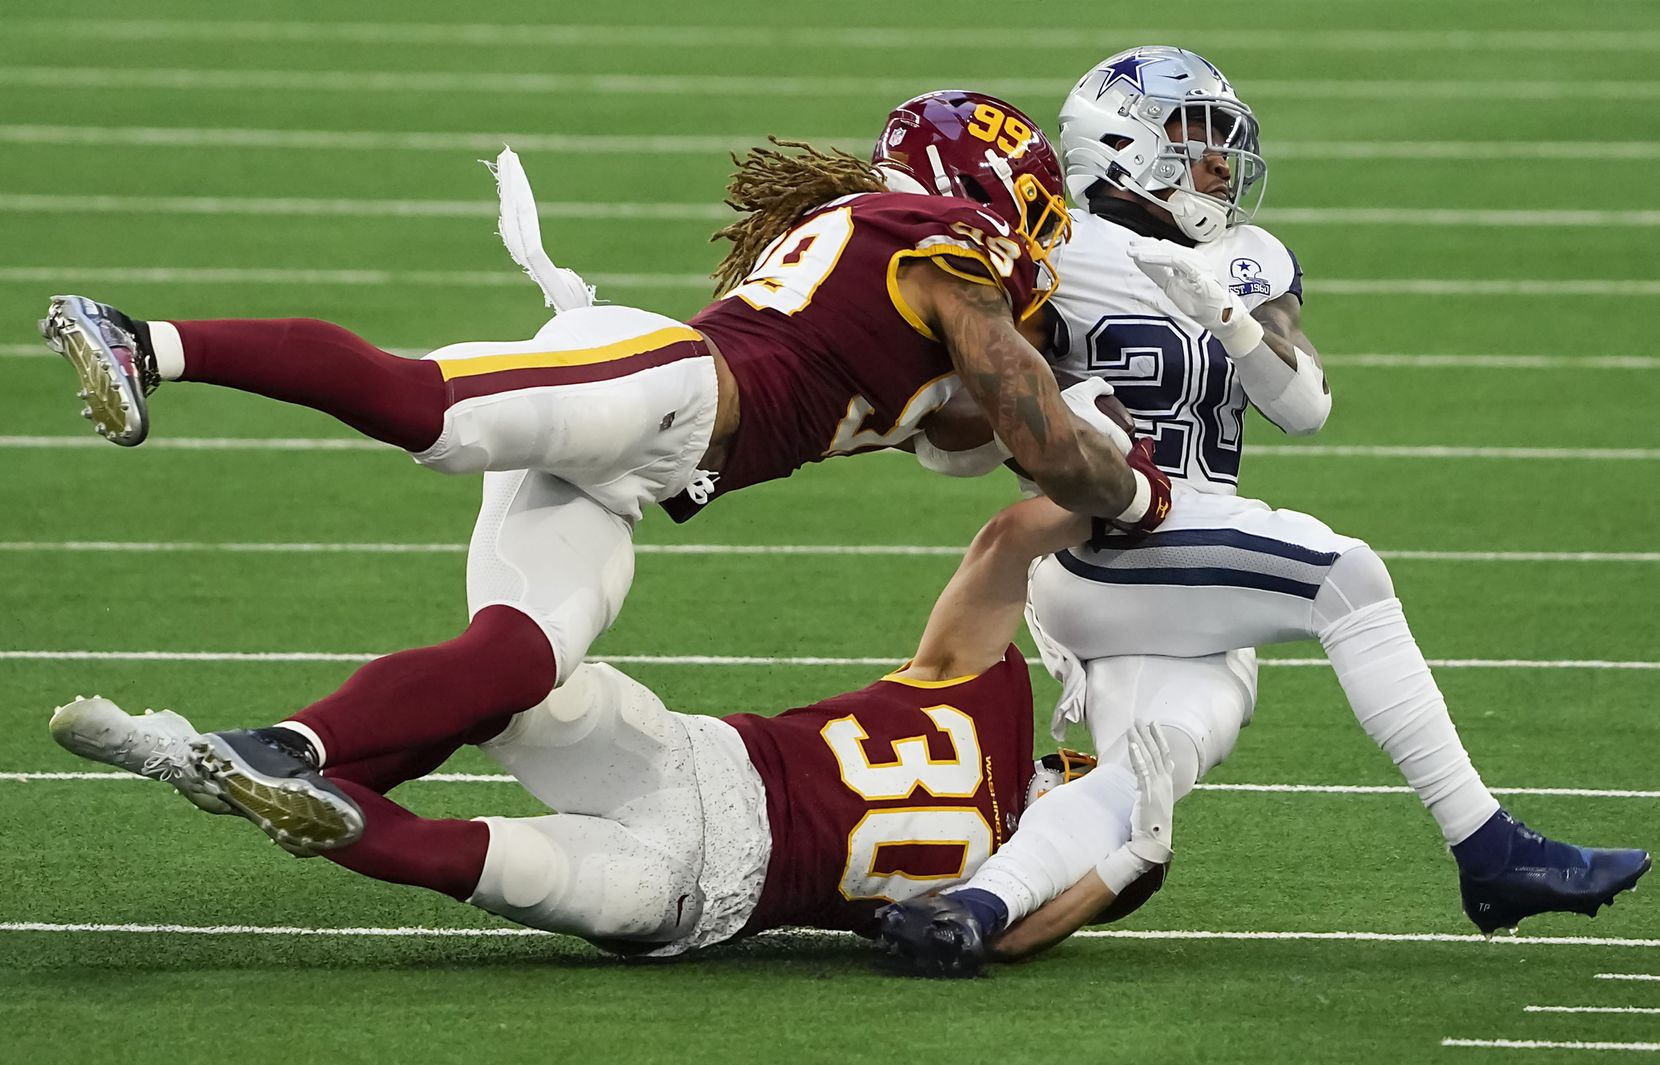 Dallas Cowboys running back Tony Pollard (20) is brought down by Washington Football Team defensive end Chase Young (99) and free safety Troy Apke (30) during the second quarter of an NFL football game at AT&T Stadium on Thursday, Nov. 26, 2020, in Arlington. (Smiley N. Pool/The Dallas Morning News)